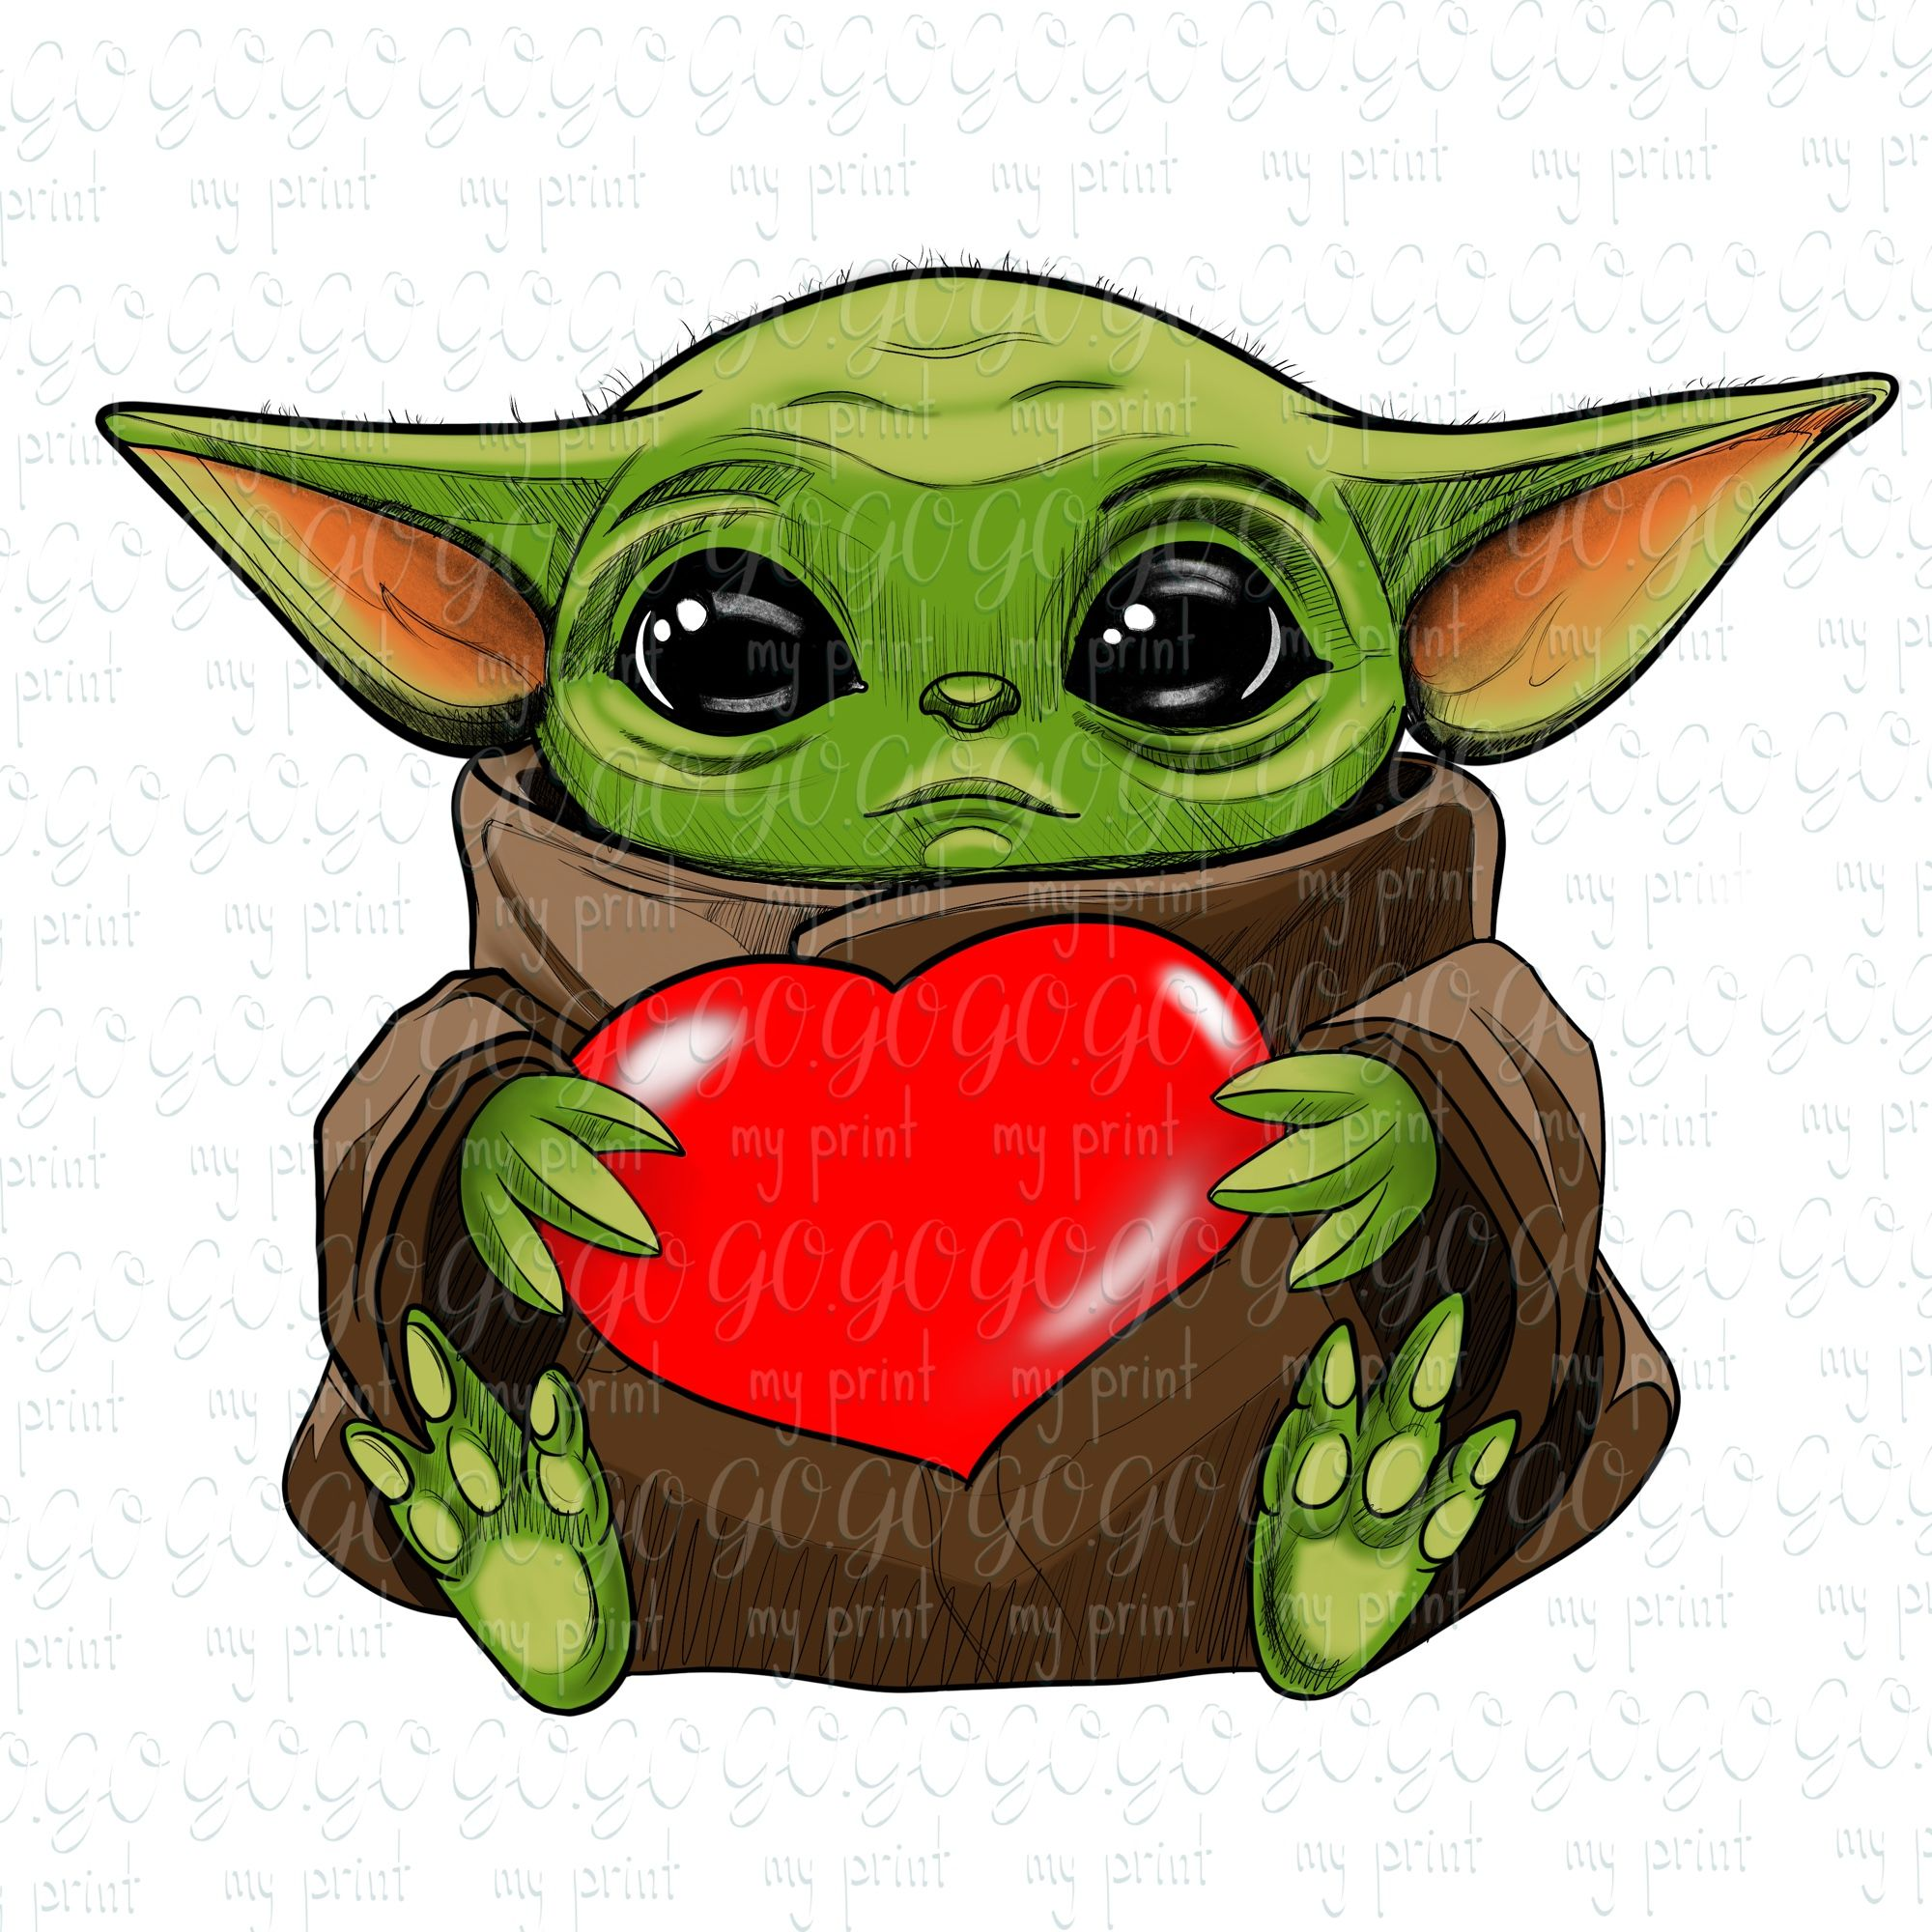 Green Baby Png Shirt Sublimation Star Baby Clipart Green Baby Etsy In 2021 Valentine Cartoon Yoda Png Cute Cartoon Wallpapers